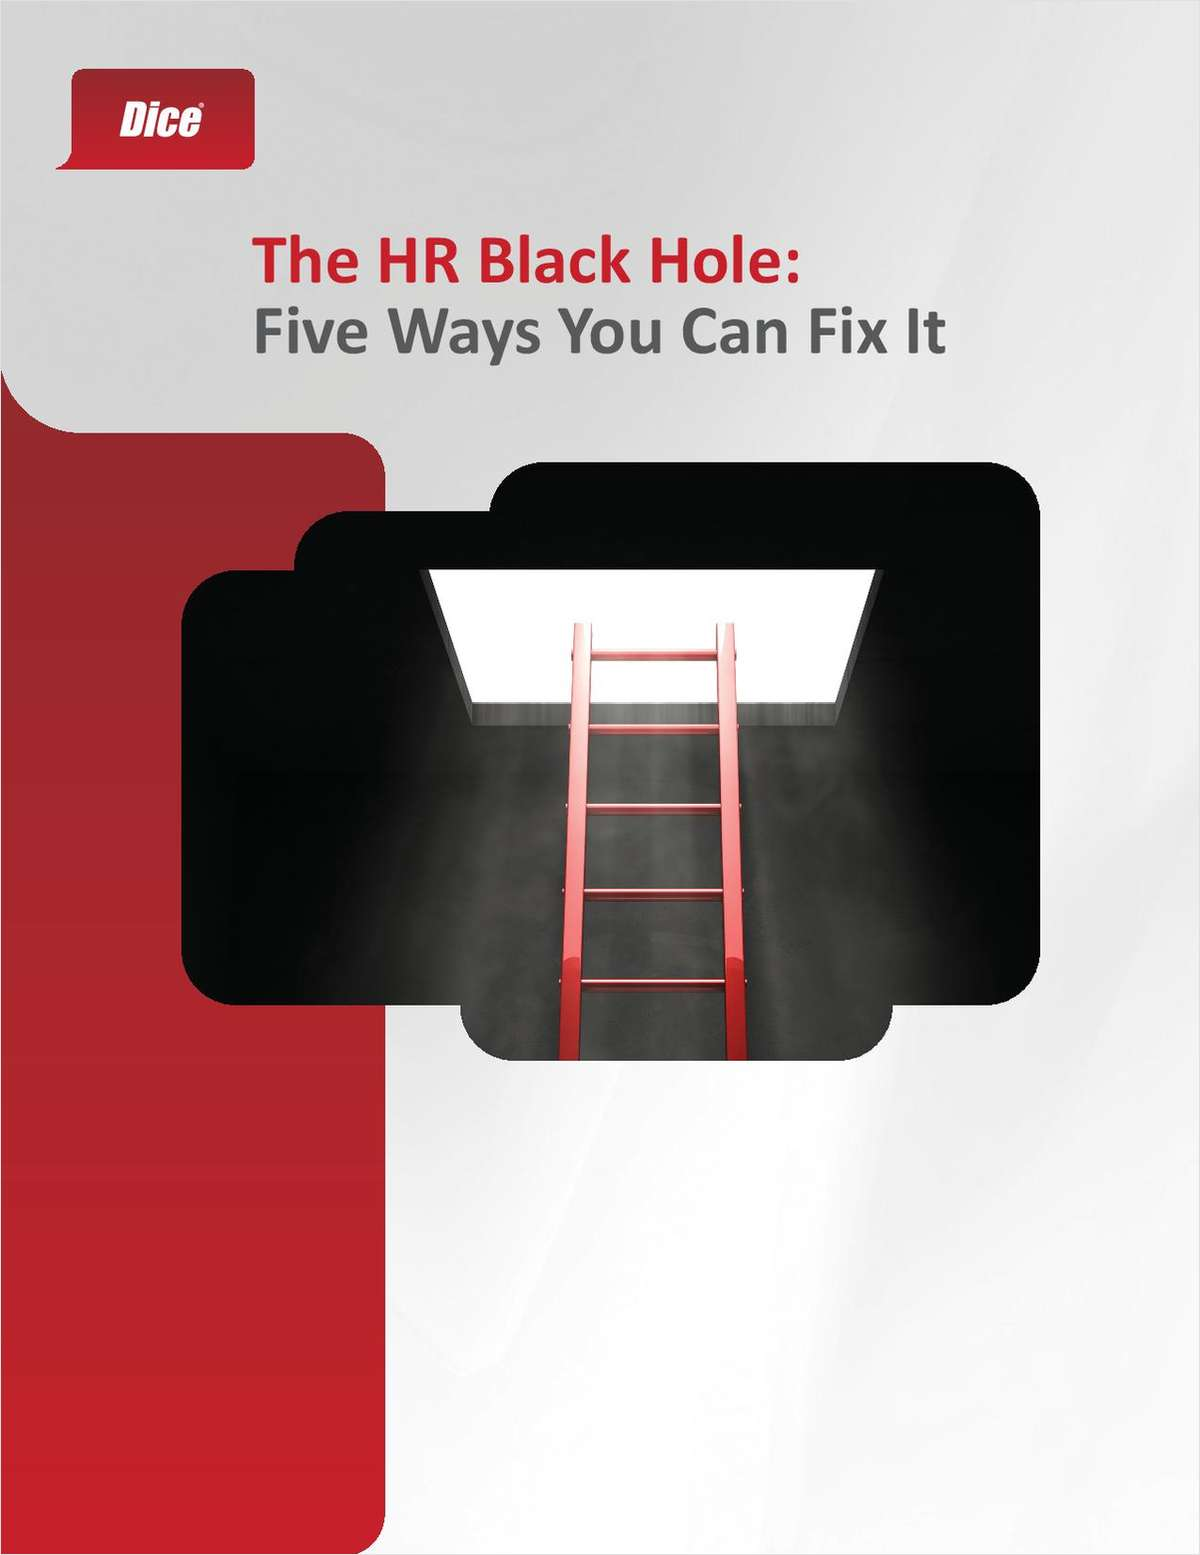 The HR Black Hole: Five Ways You Can Fix It